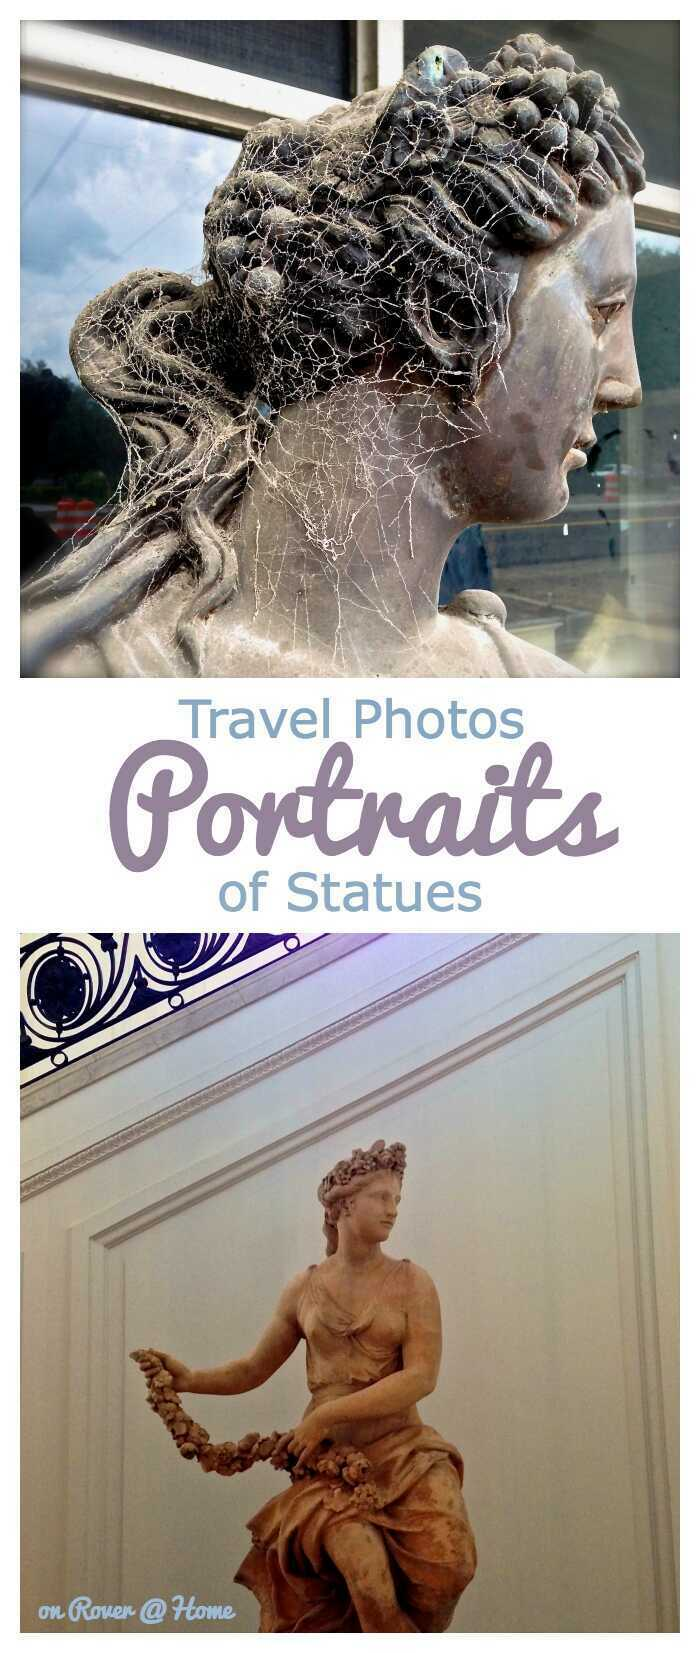 Portraits of Statues, the Sculpture or Statuary becomes your model for portraits - an interesting theme for travel photography